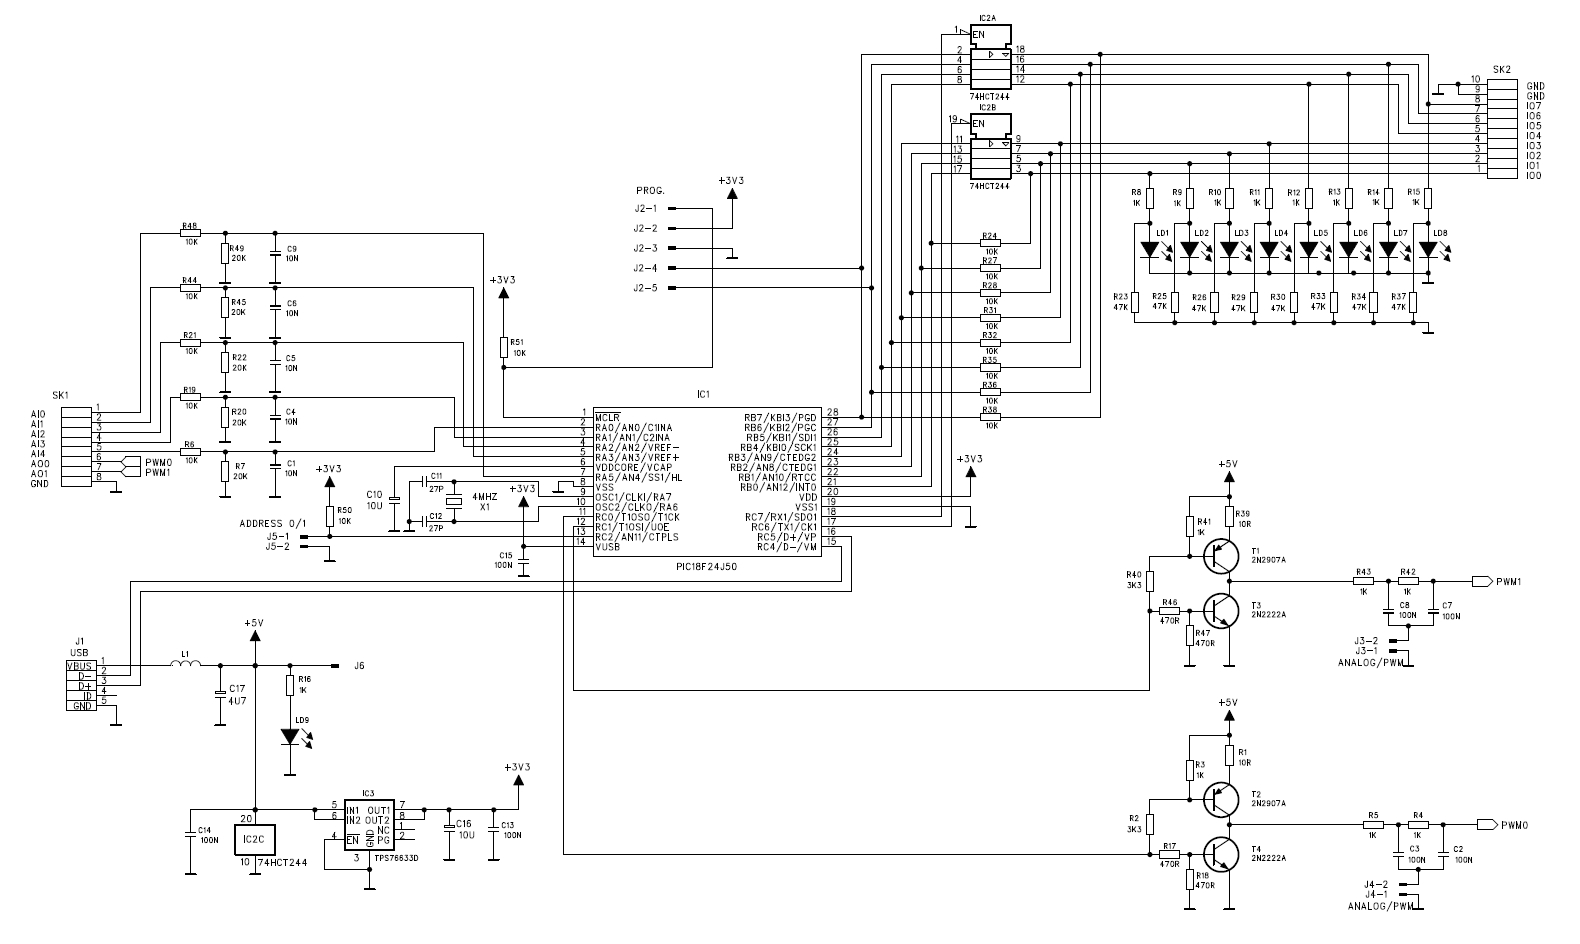 vm167 firmware and schematic diagram of the board - pc related projects